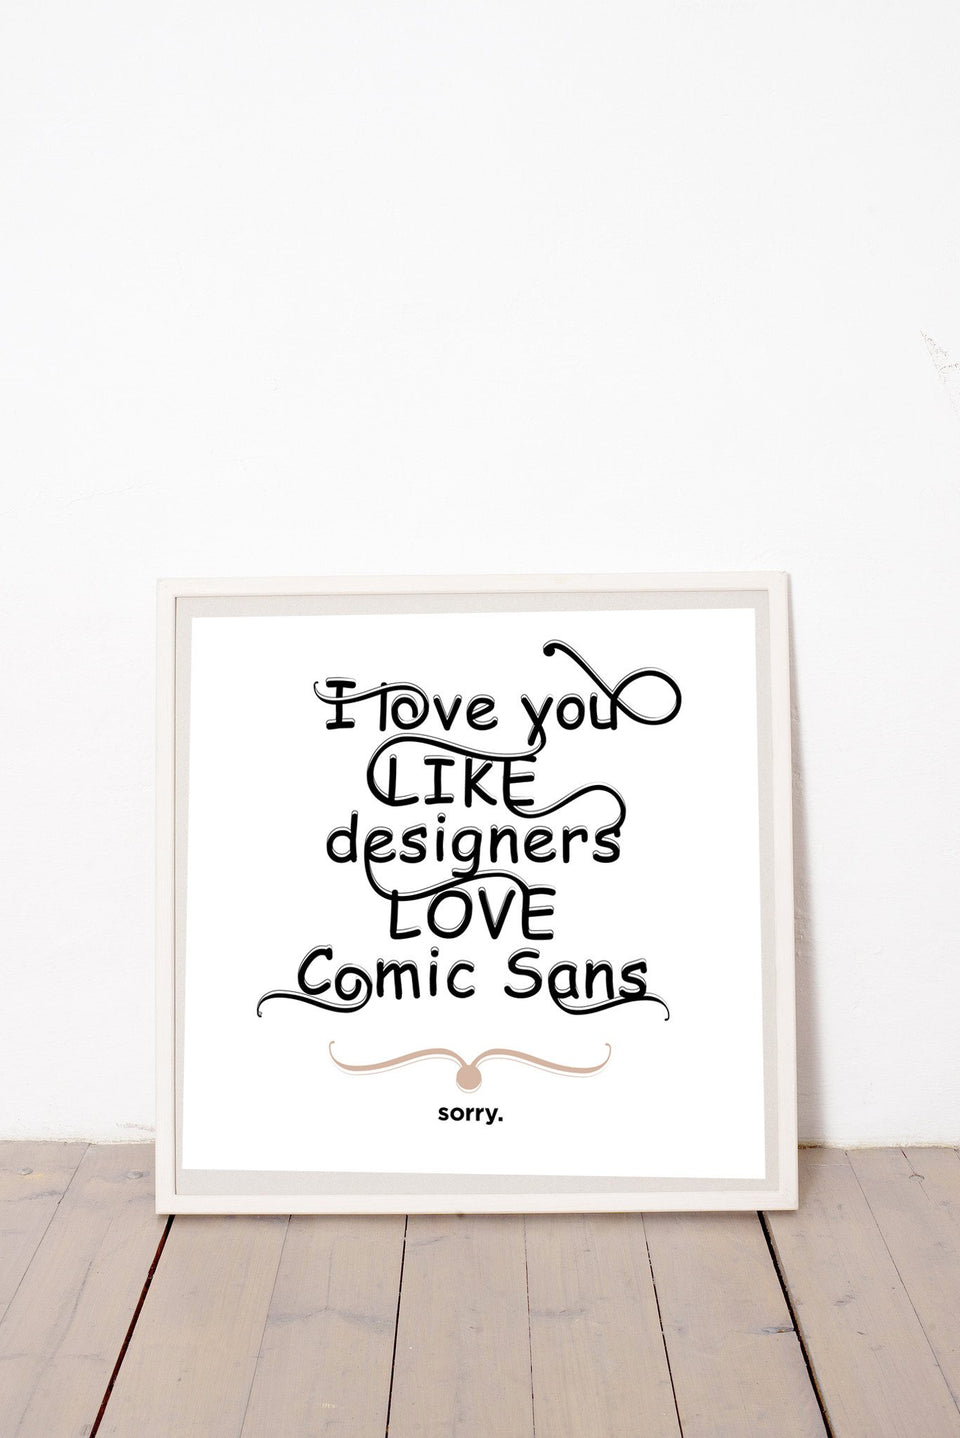 I LOVE YOU LIKE DESIGNERS LOVE COMIC SANS SORRY MARCELL PUSKÁS PUSKAAS PRINTA HAND-MADE WATER-BASED SILKSCREEN PRINT ON RECYCLED PAPER